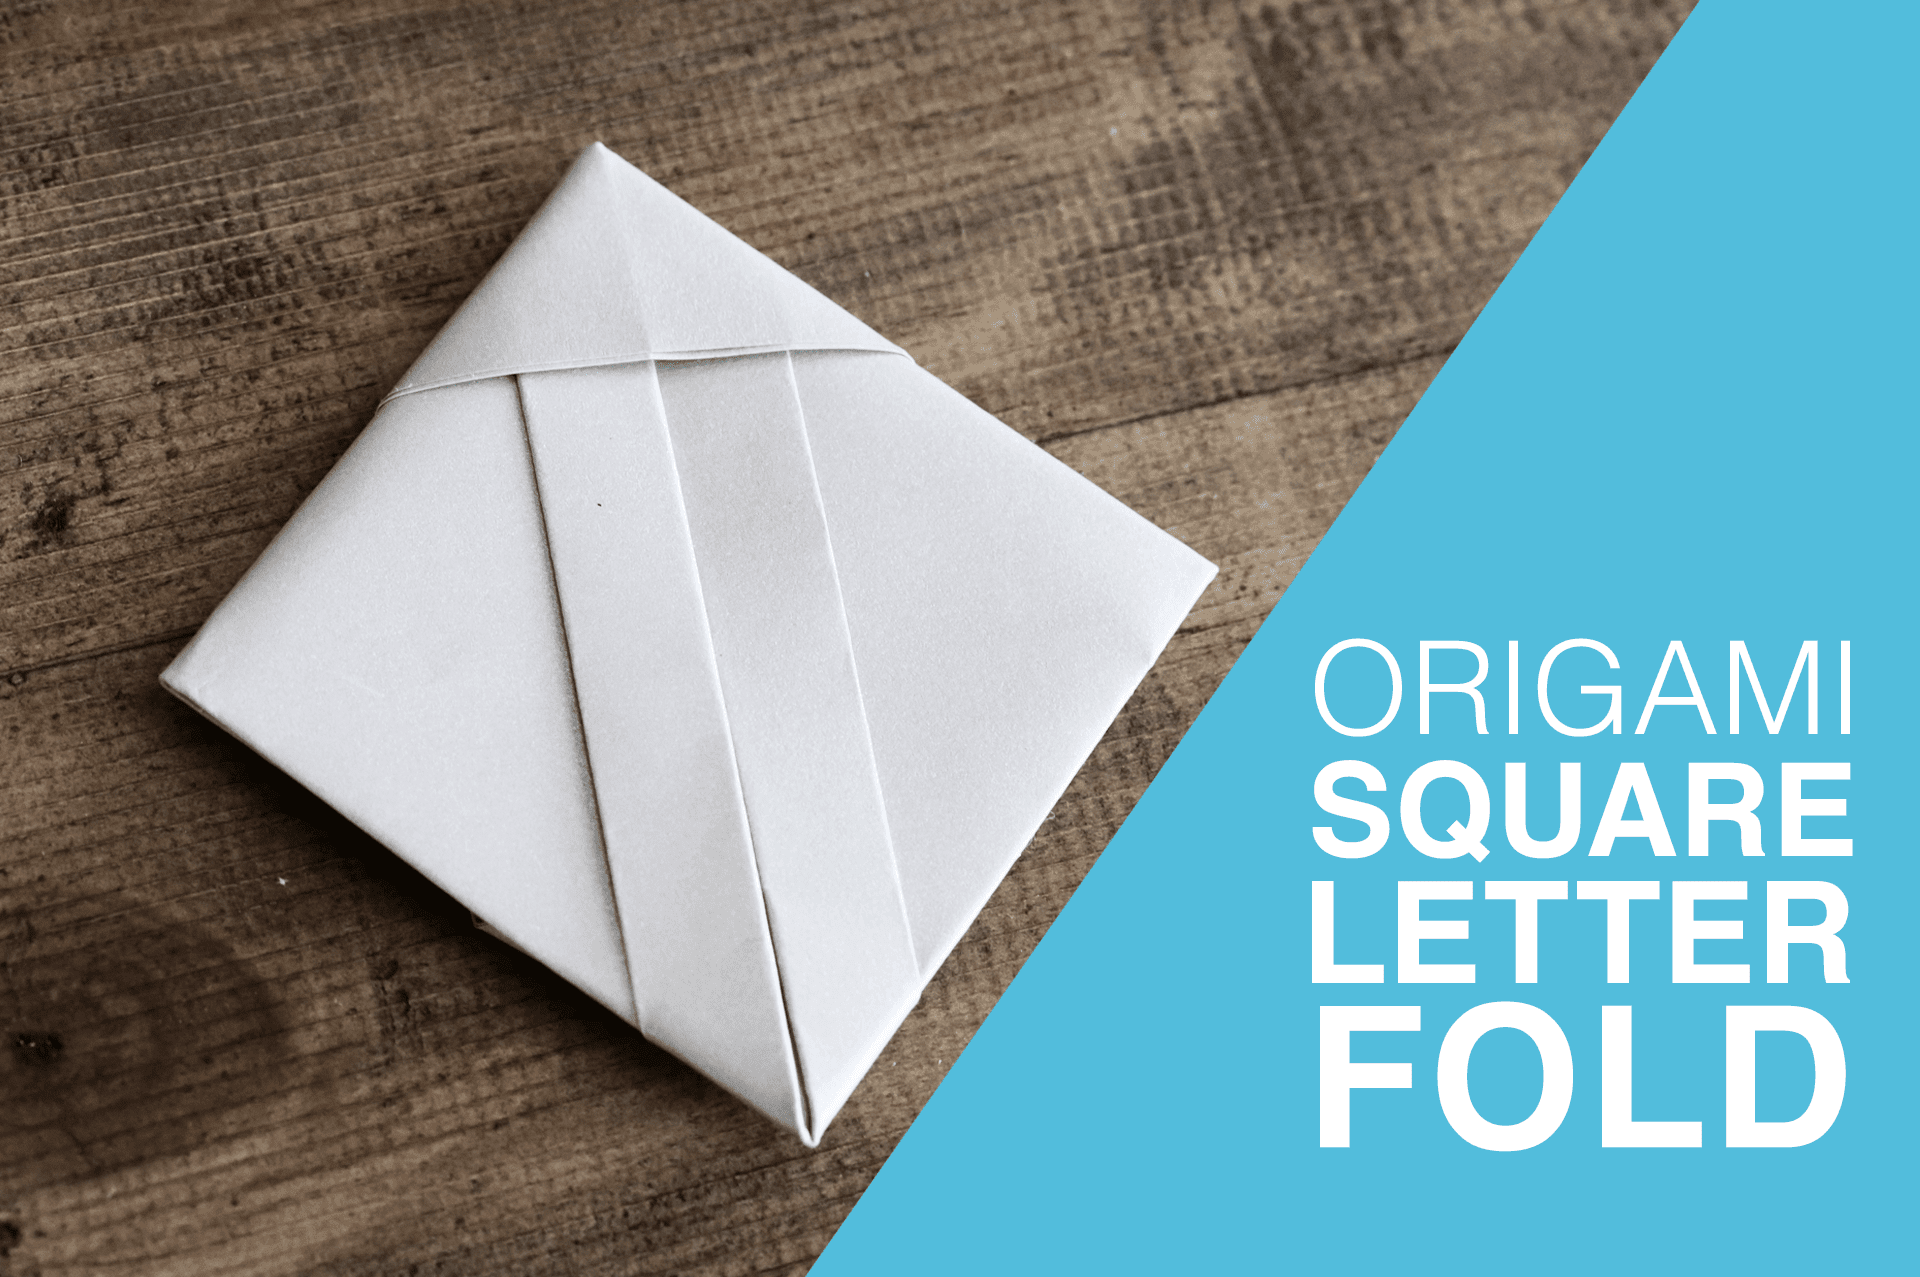 Origami Square Letterfold Tutorial - photo#14